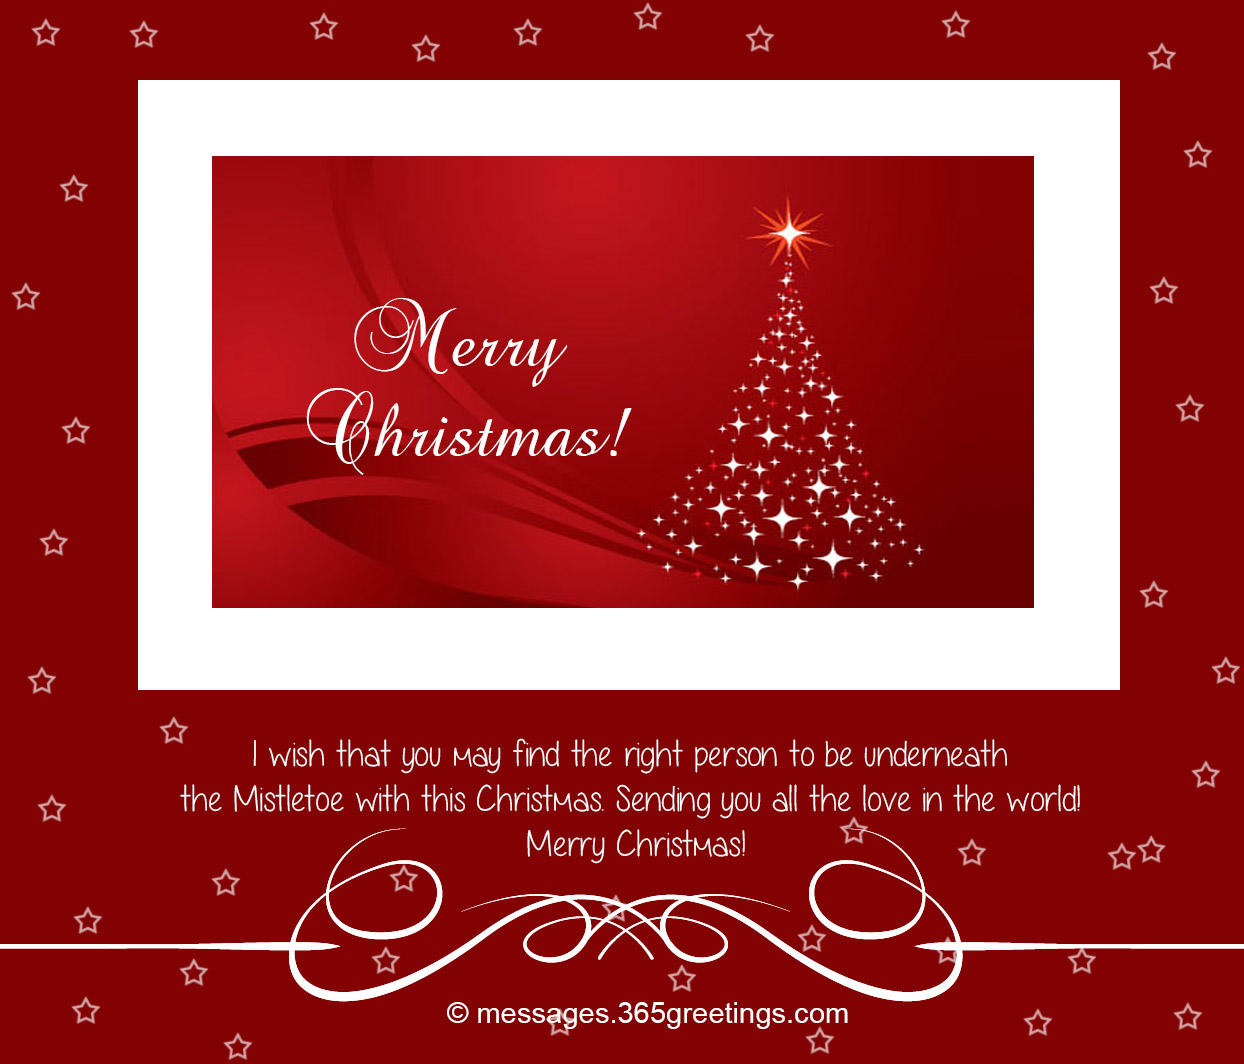 Best christmas card sayings and greetings 365greetings christmas card sayings greetings kristyandbryce Choice Image